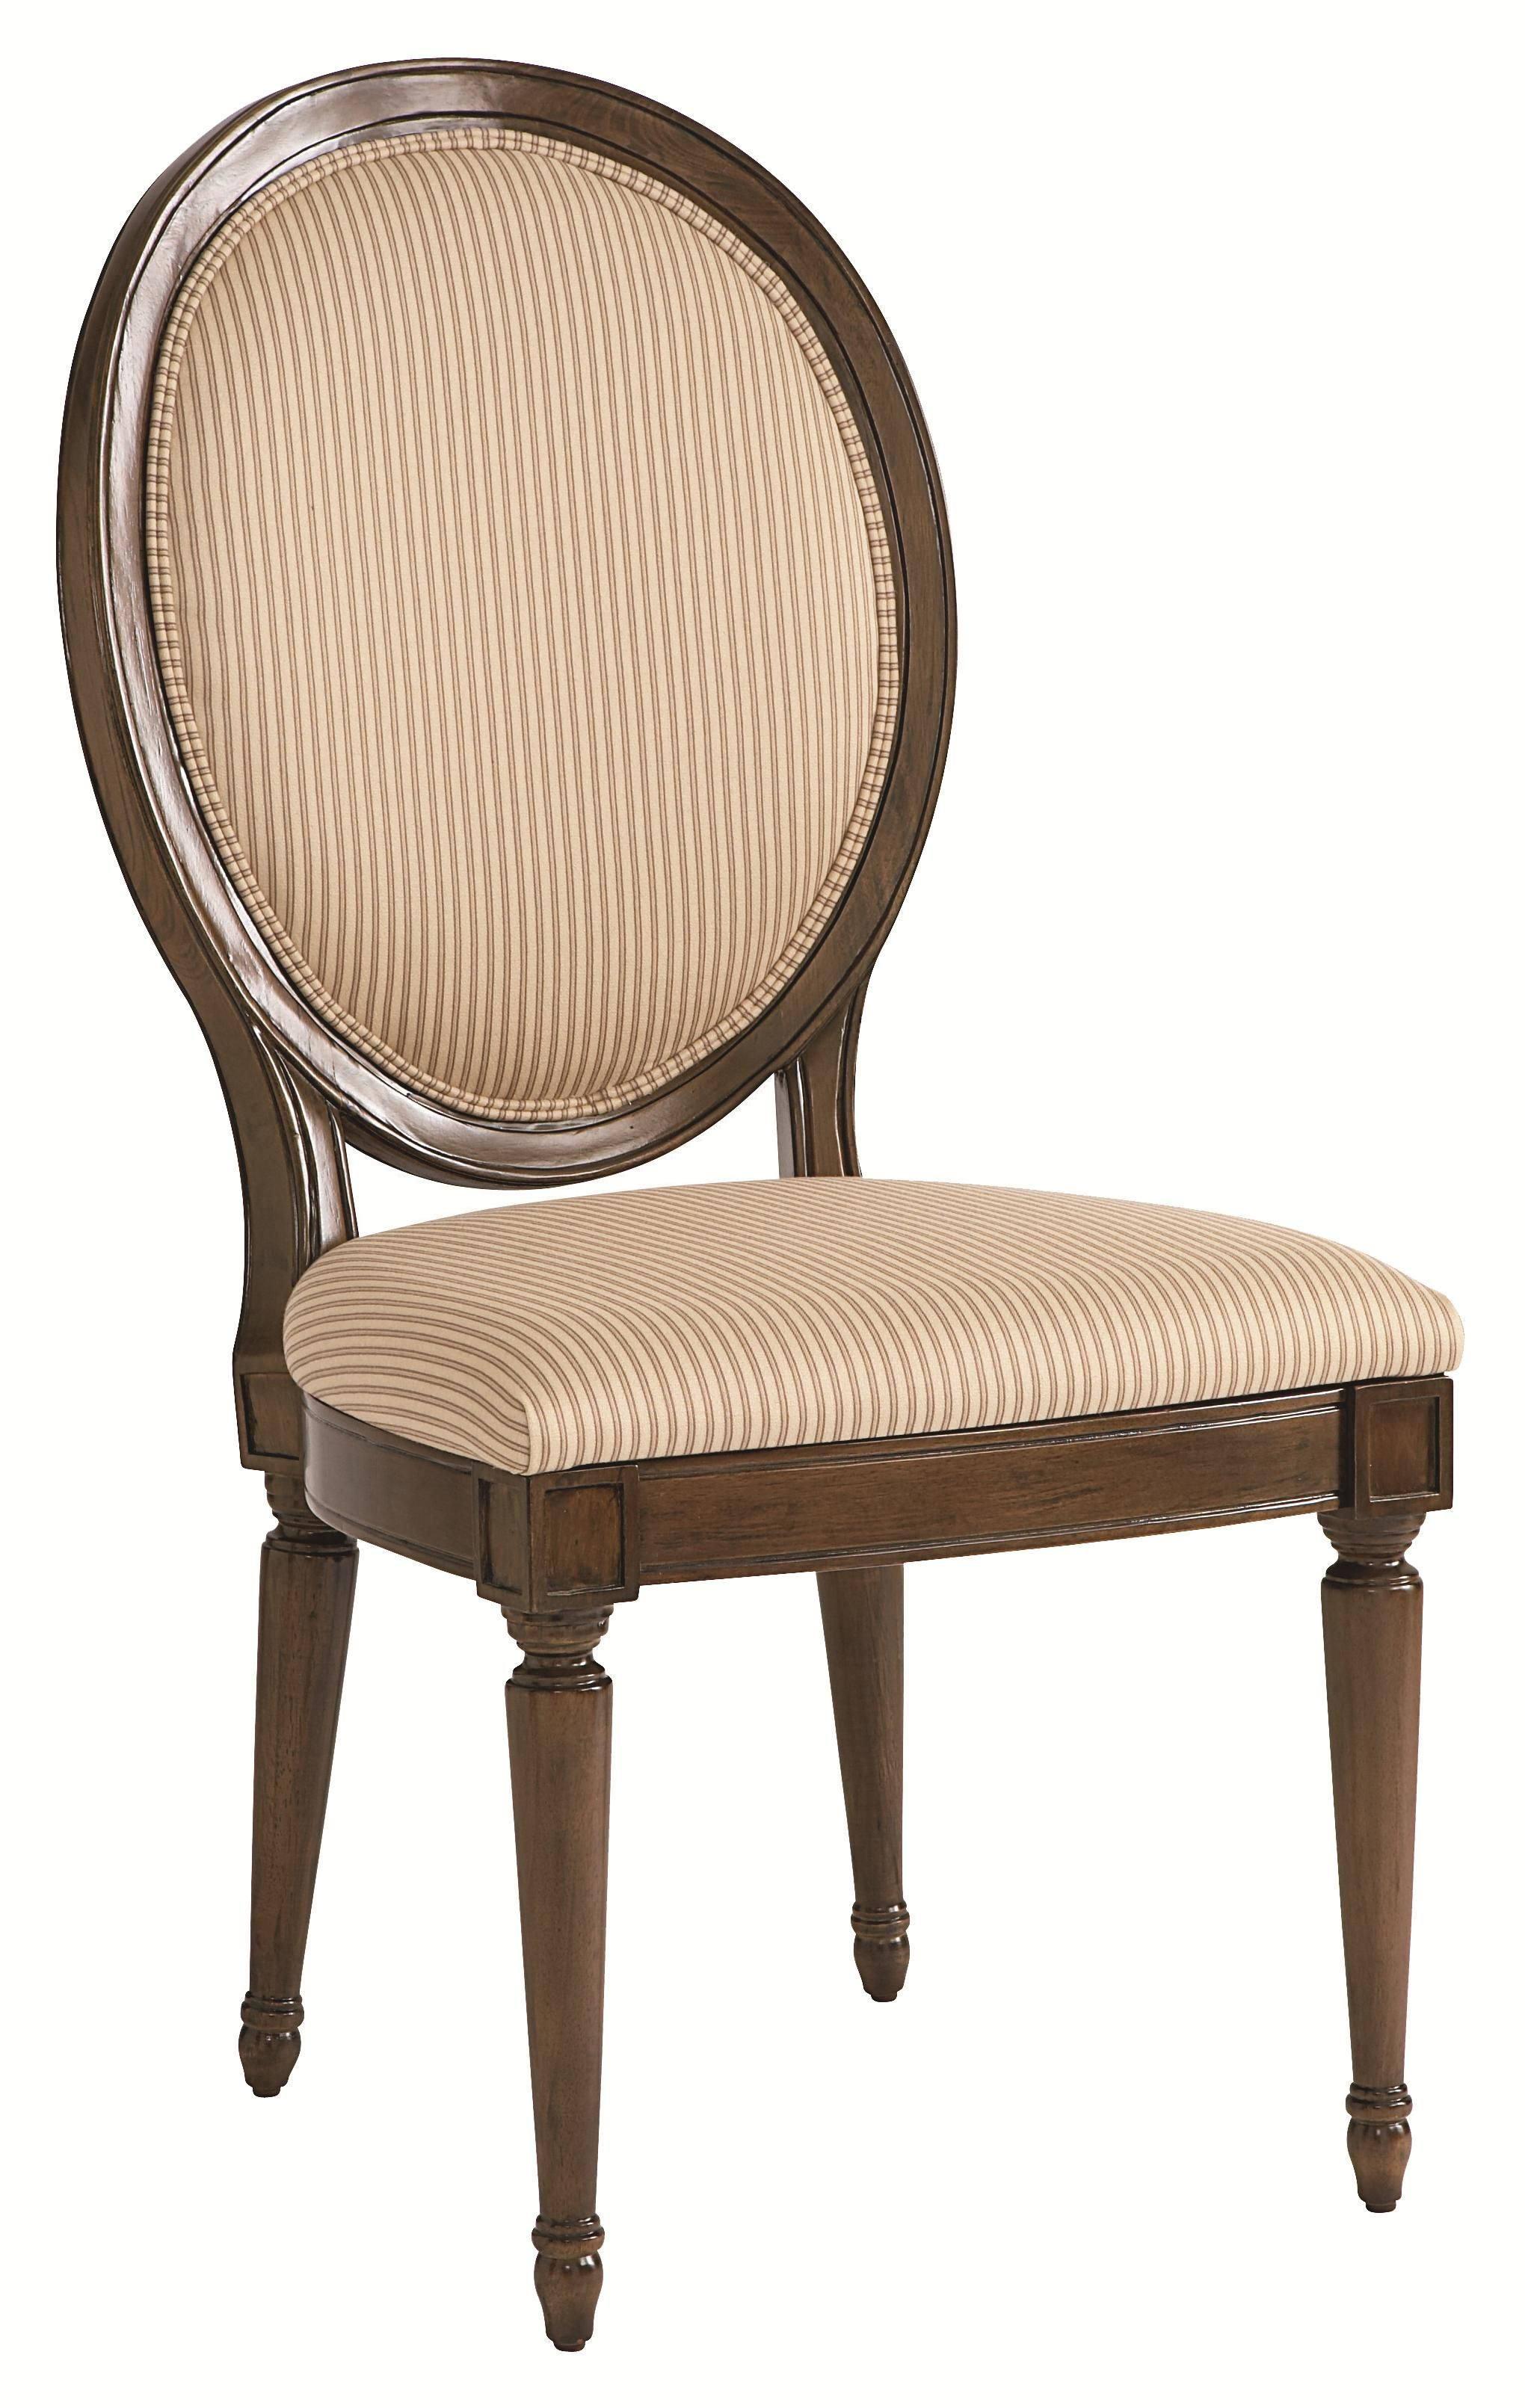 Meadowbrook Manor Oval Back Side Chair For Elegant Dining Room Table Sets By HGTV Home Furniture